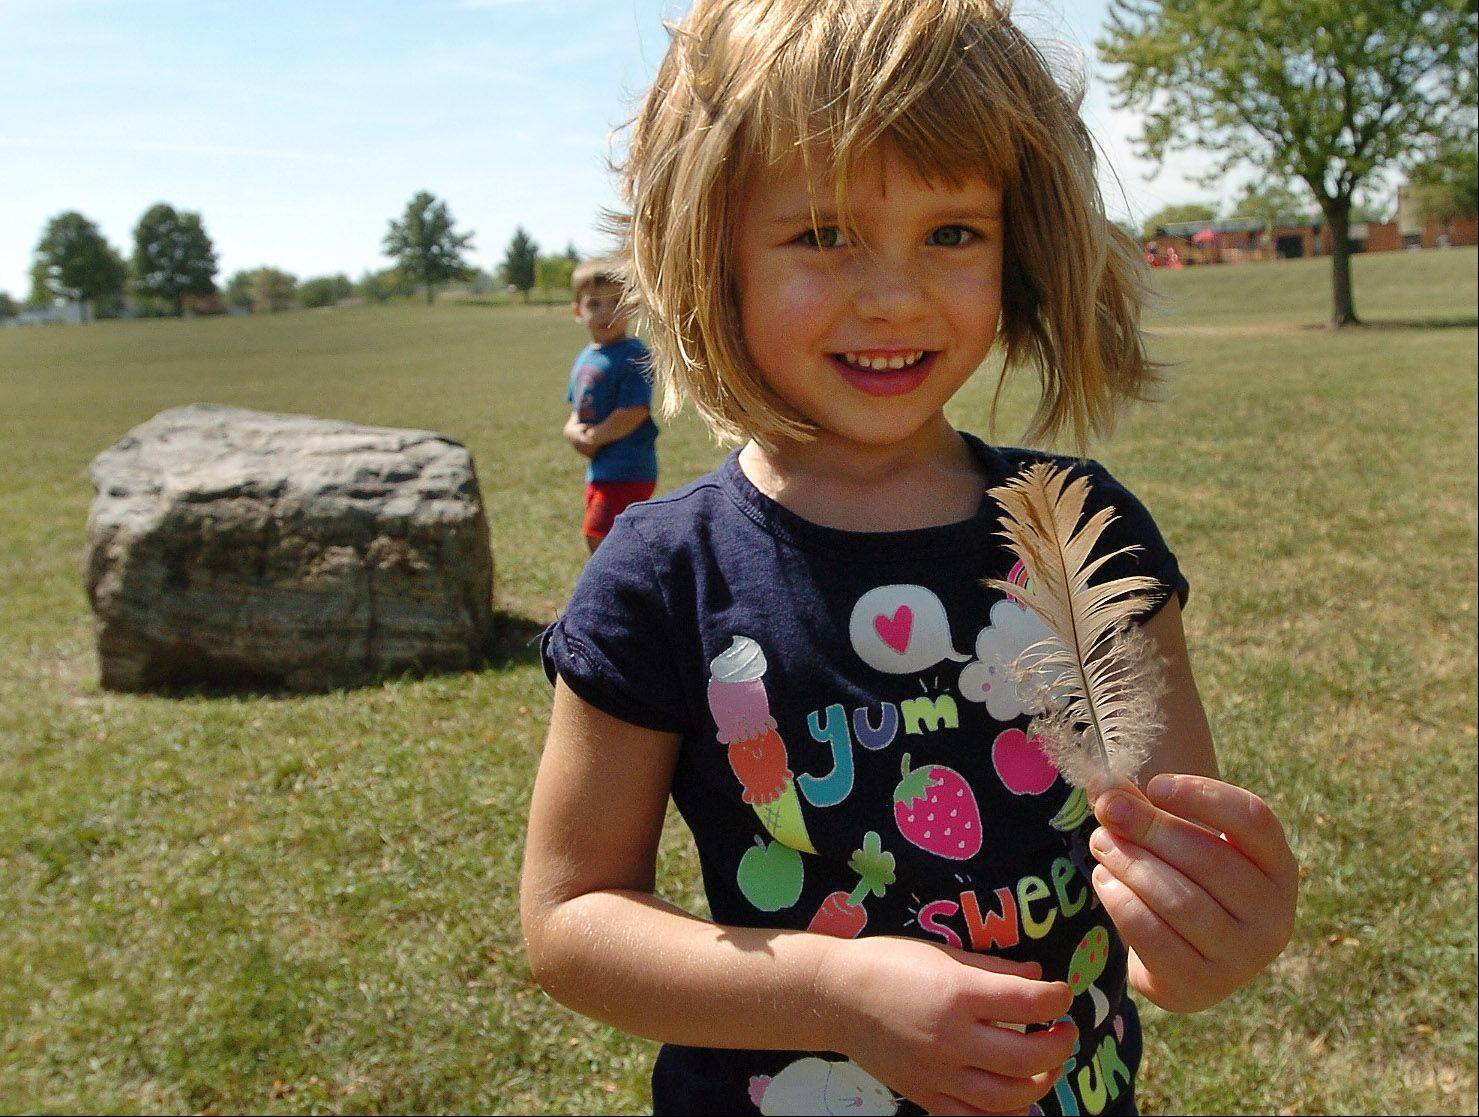 4-year-old Lily Anderson finds a feather in Hoover Park along her nature hike.